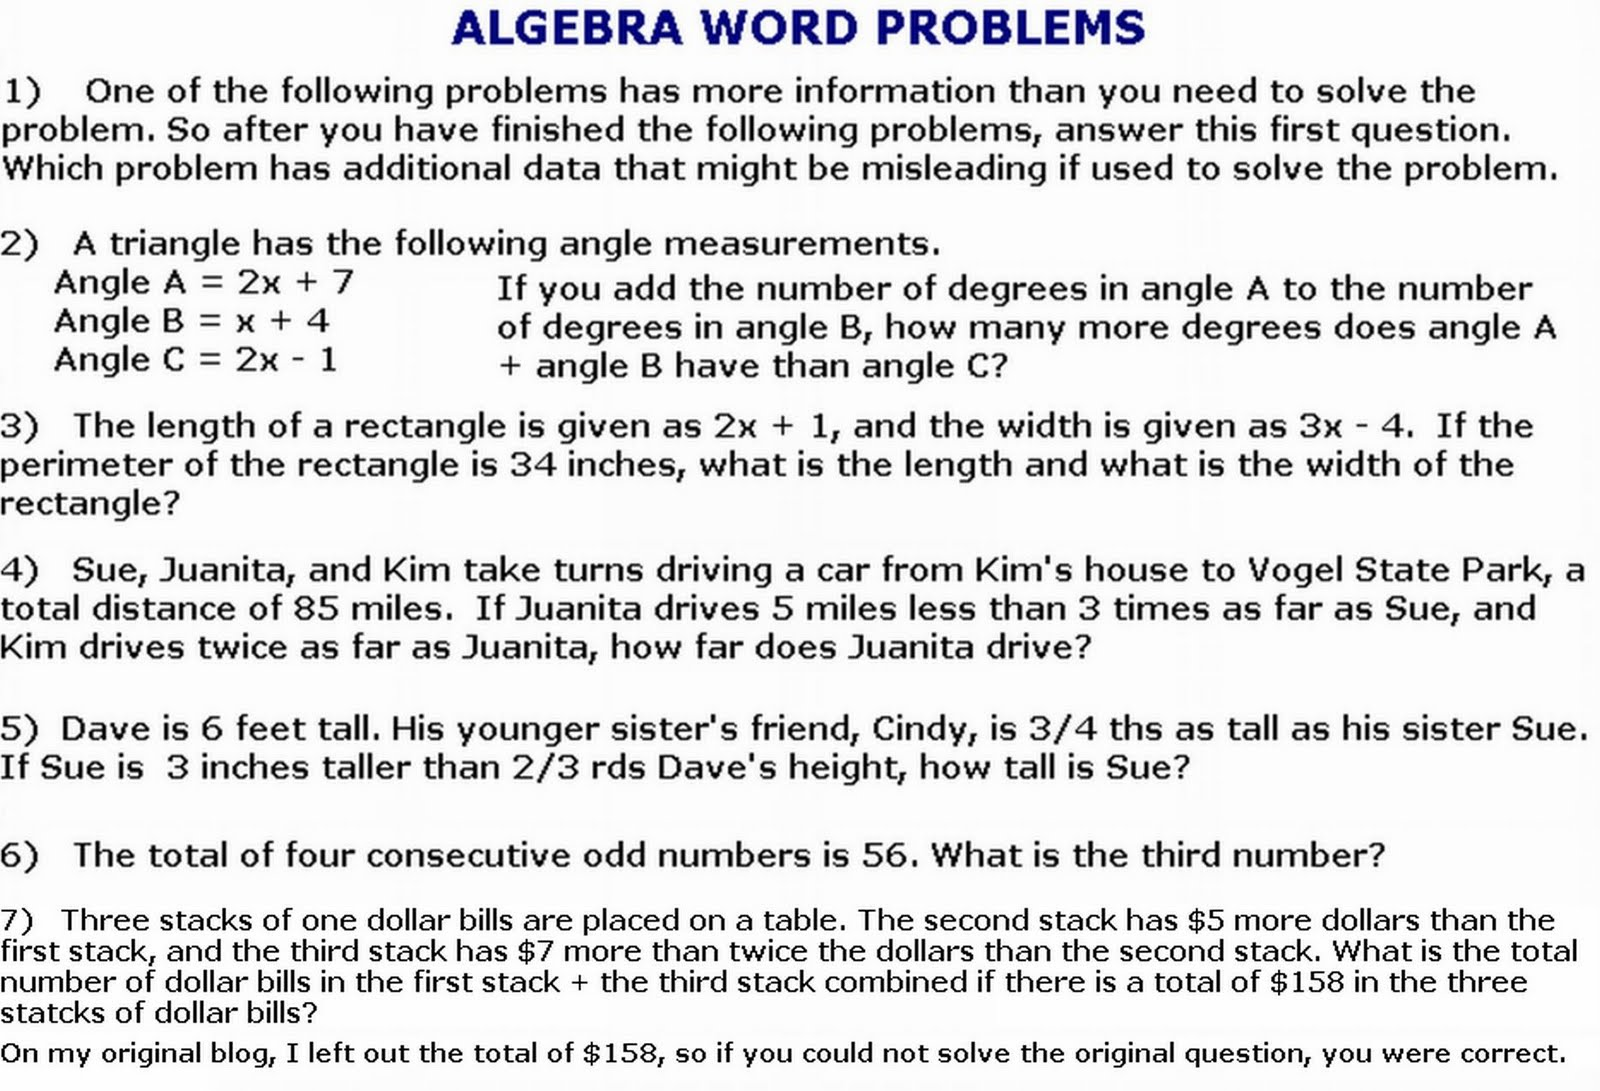 worksheet Algebra Word Problems cobb adult ed math algebra word problems problems